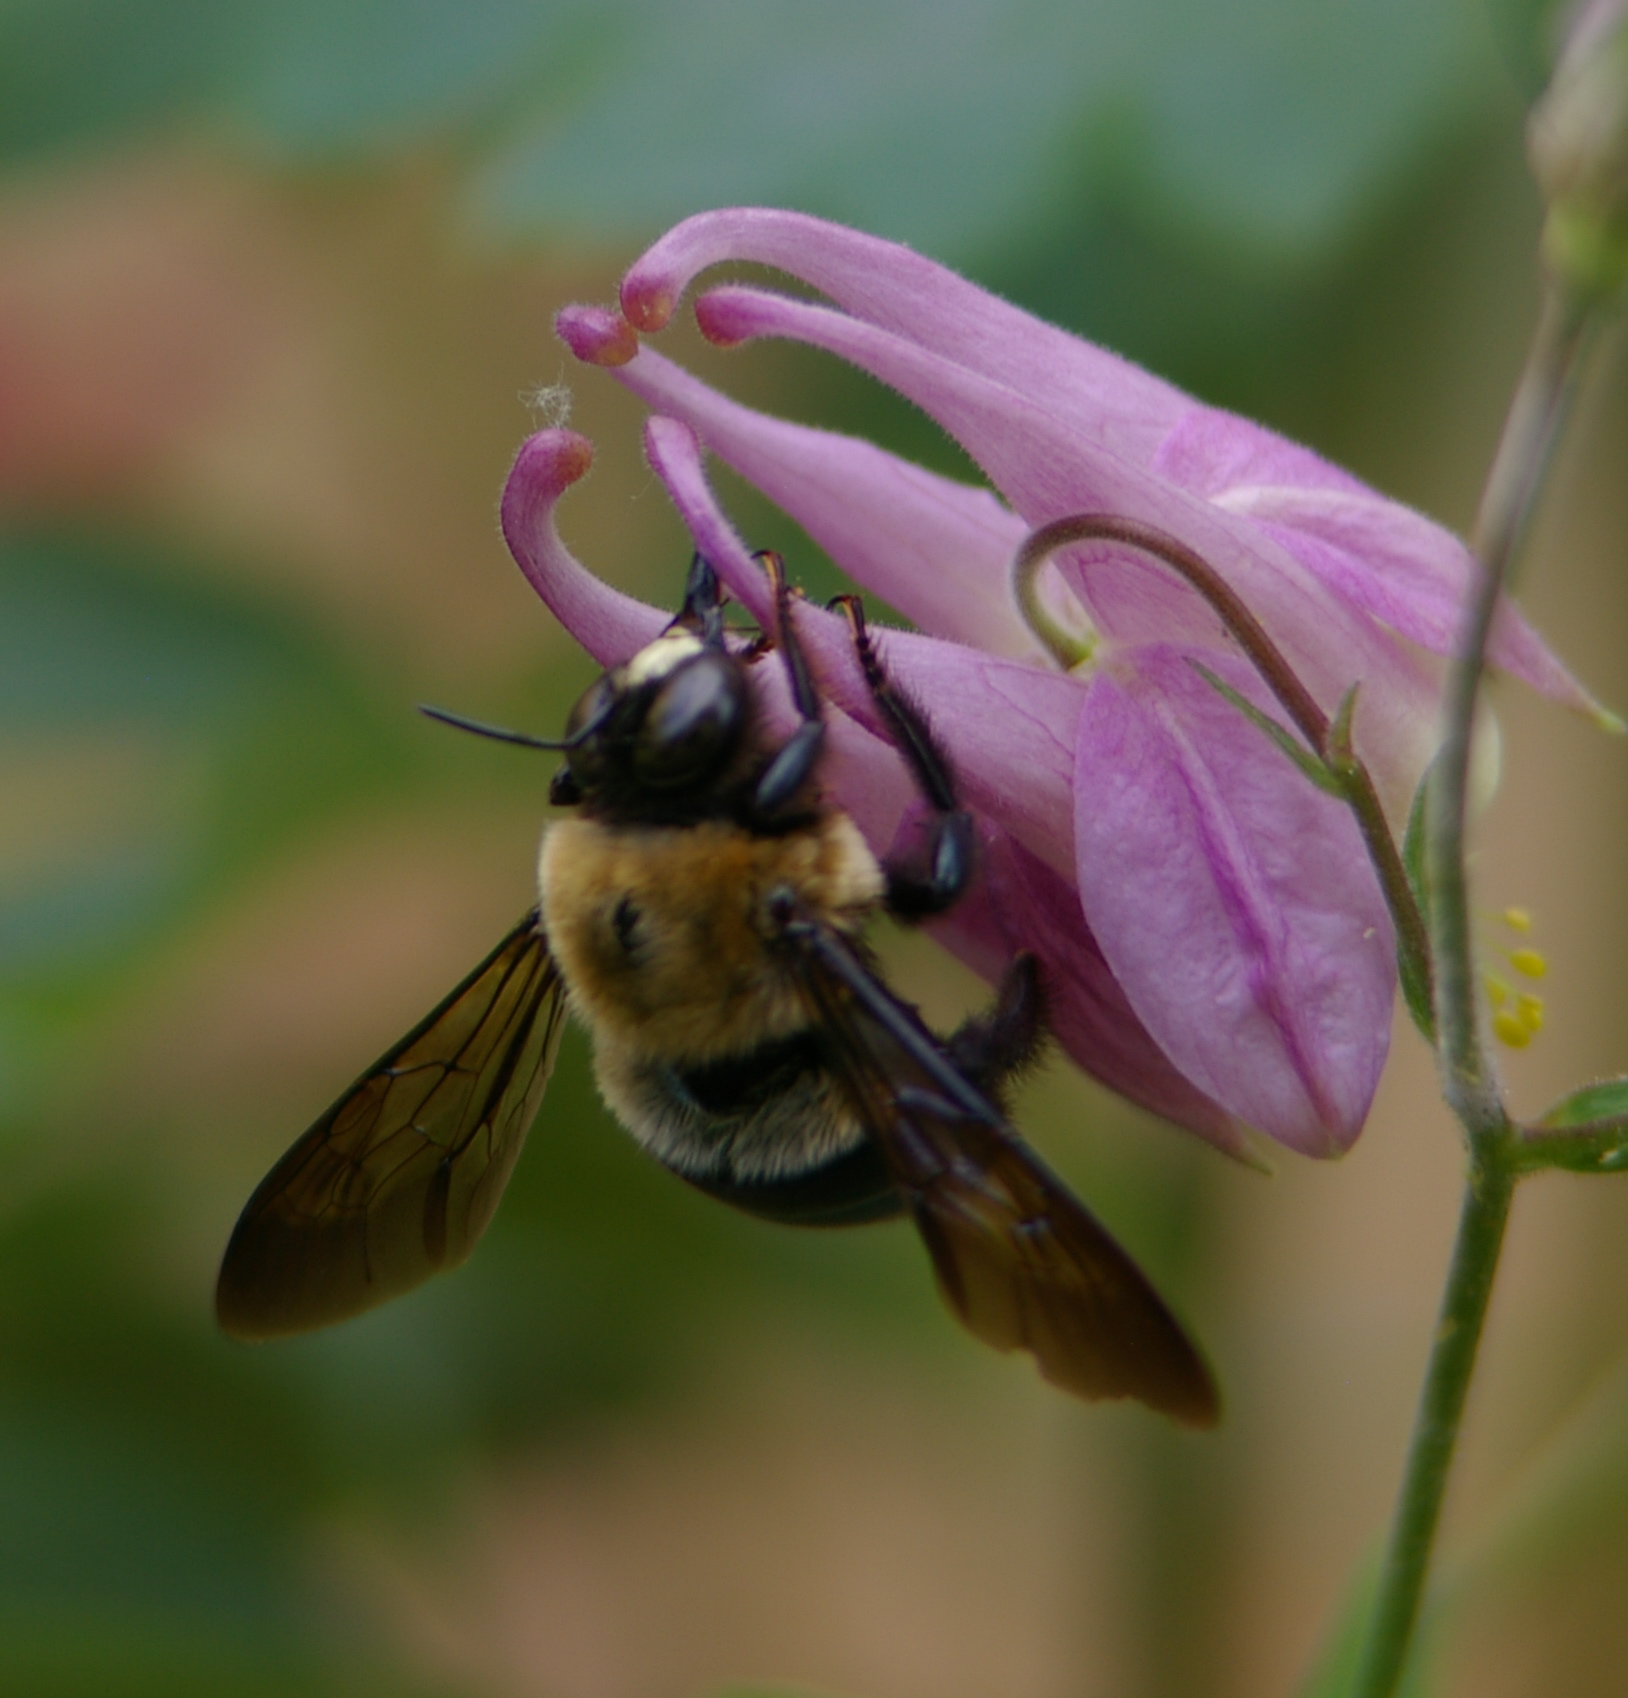 White-faced male carpenter bee stealing necar from Columbine flower